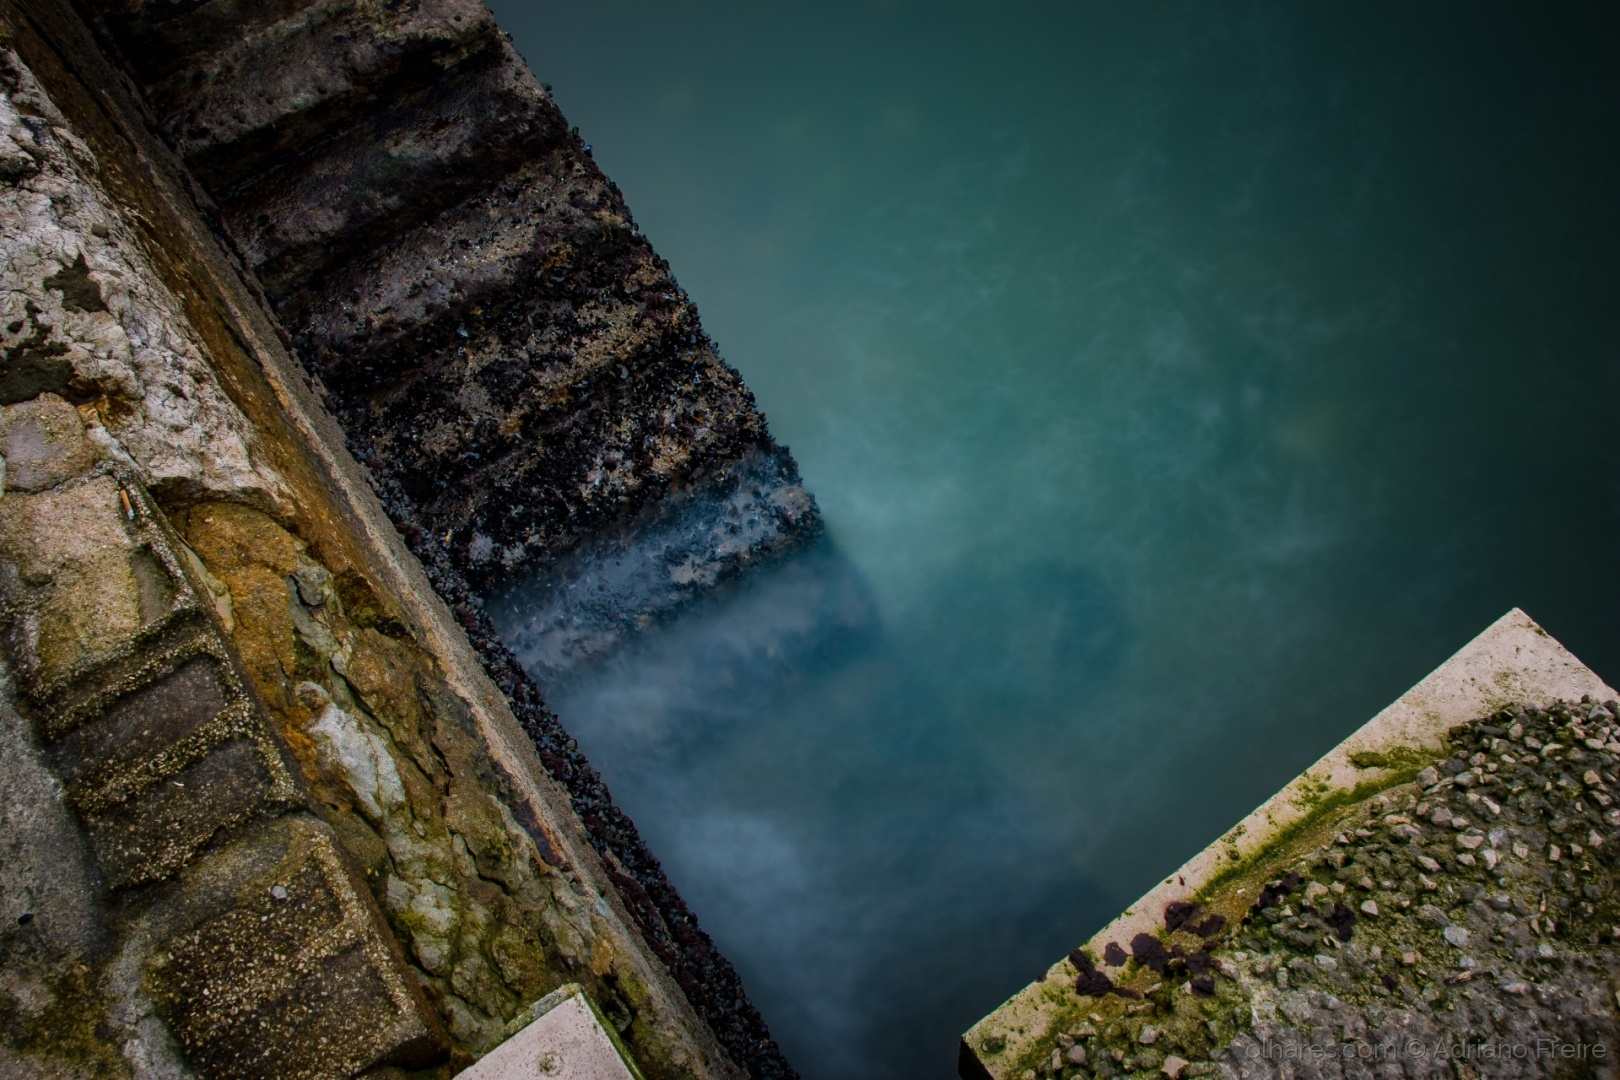 Abstrato/The Wet Stairs